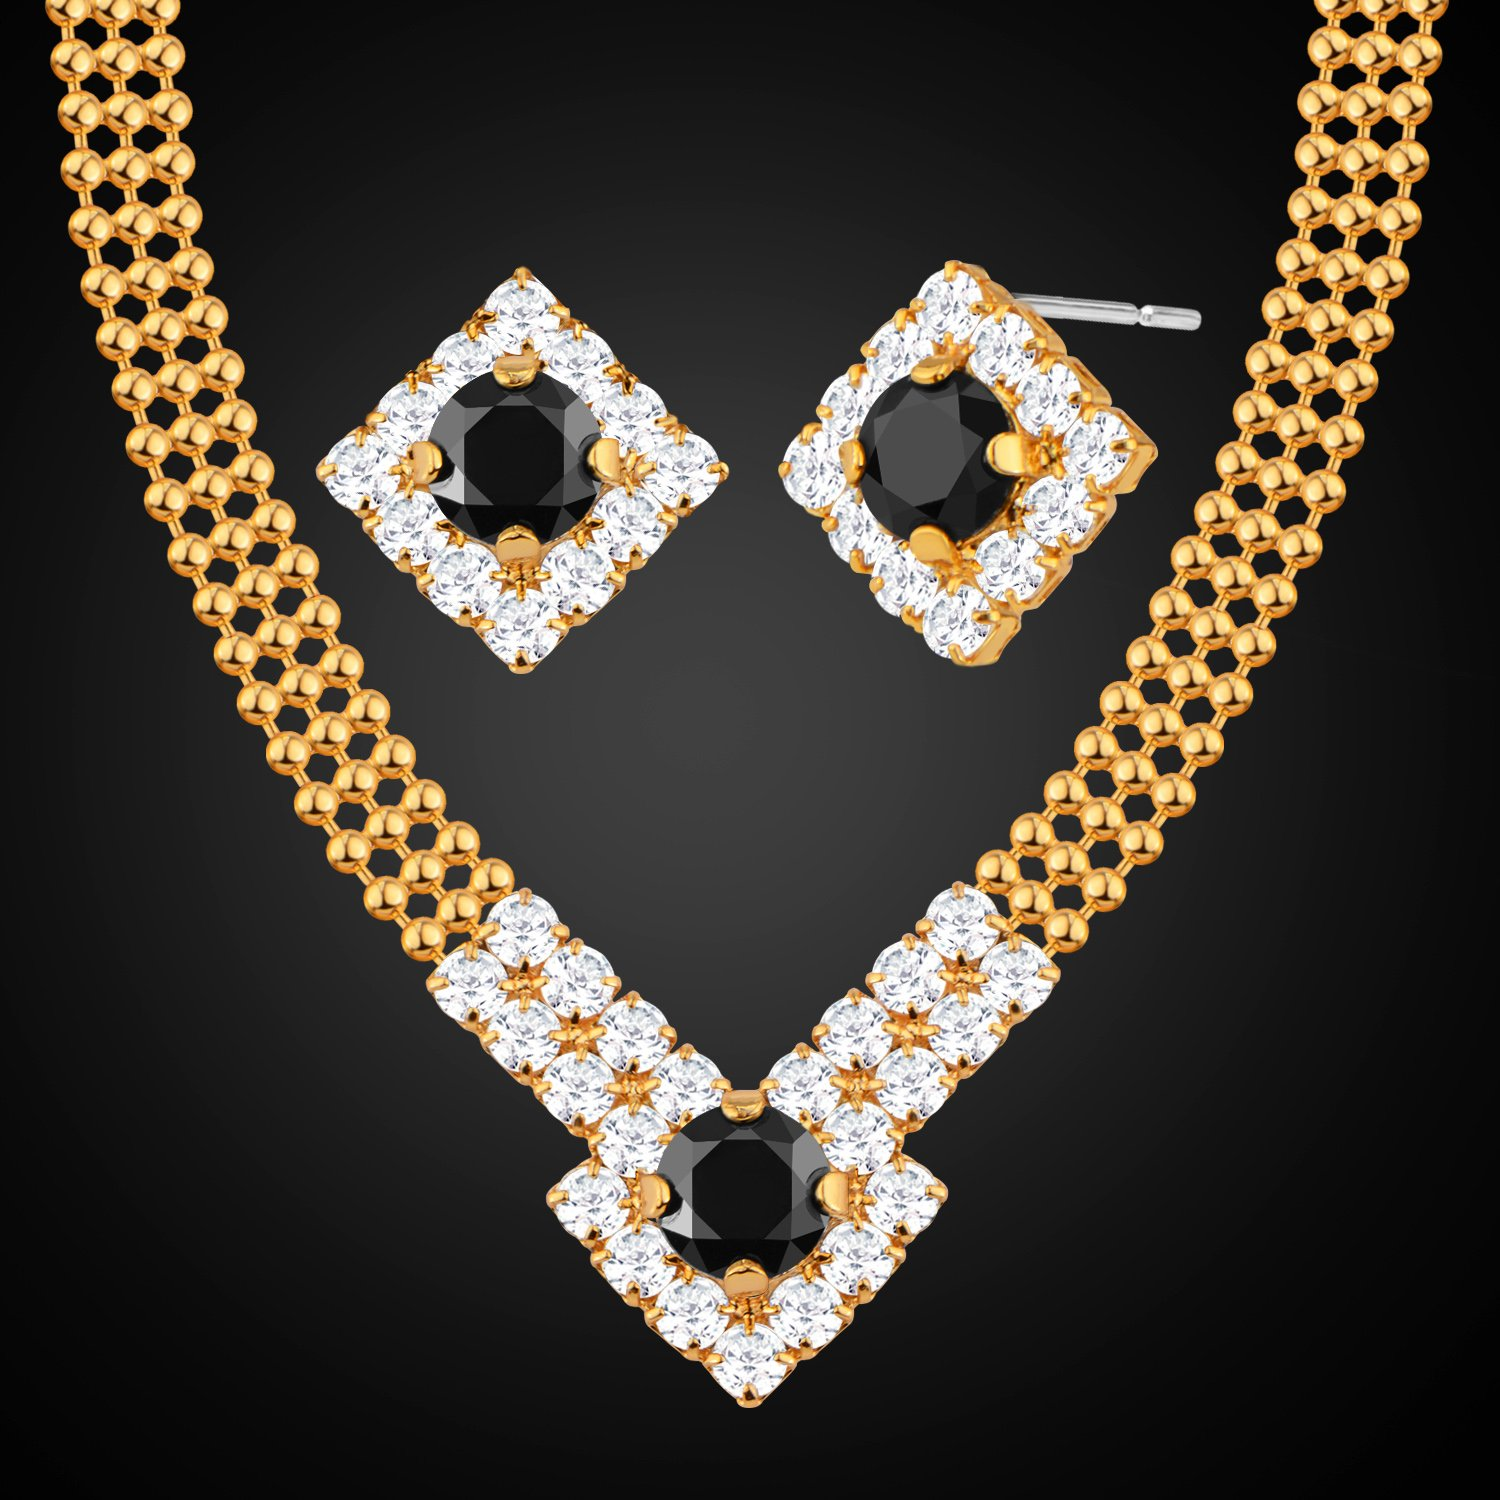 Girl Charm Jewelry Sets Party Gifts 18K Real Gold Plated Necklace Earrings set NB60096-gold DODO Jewelry